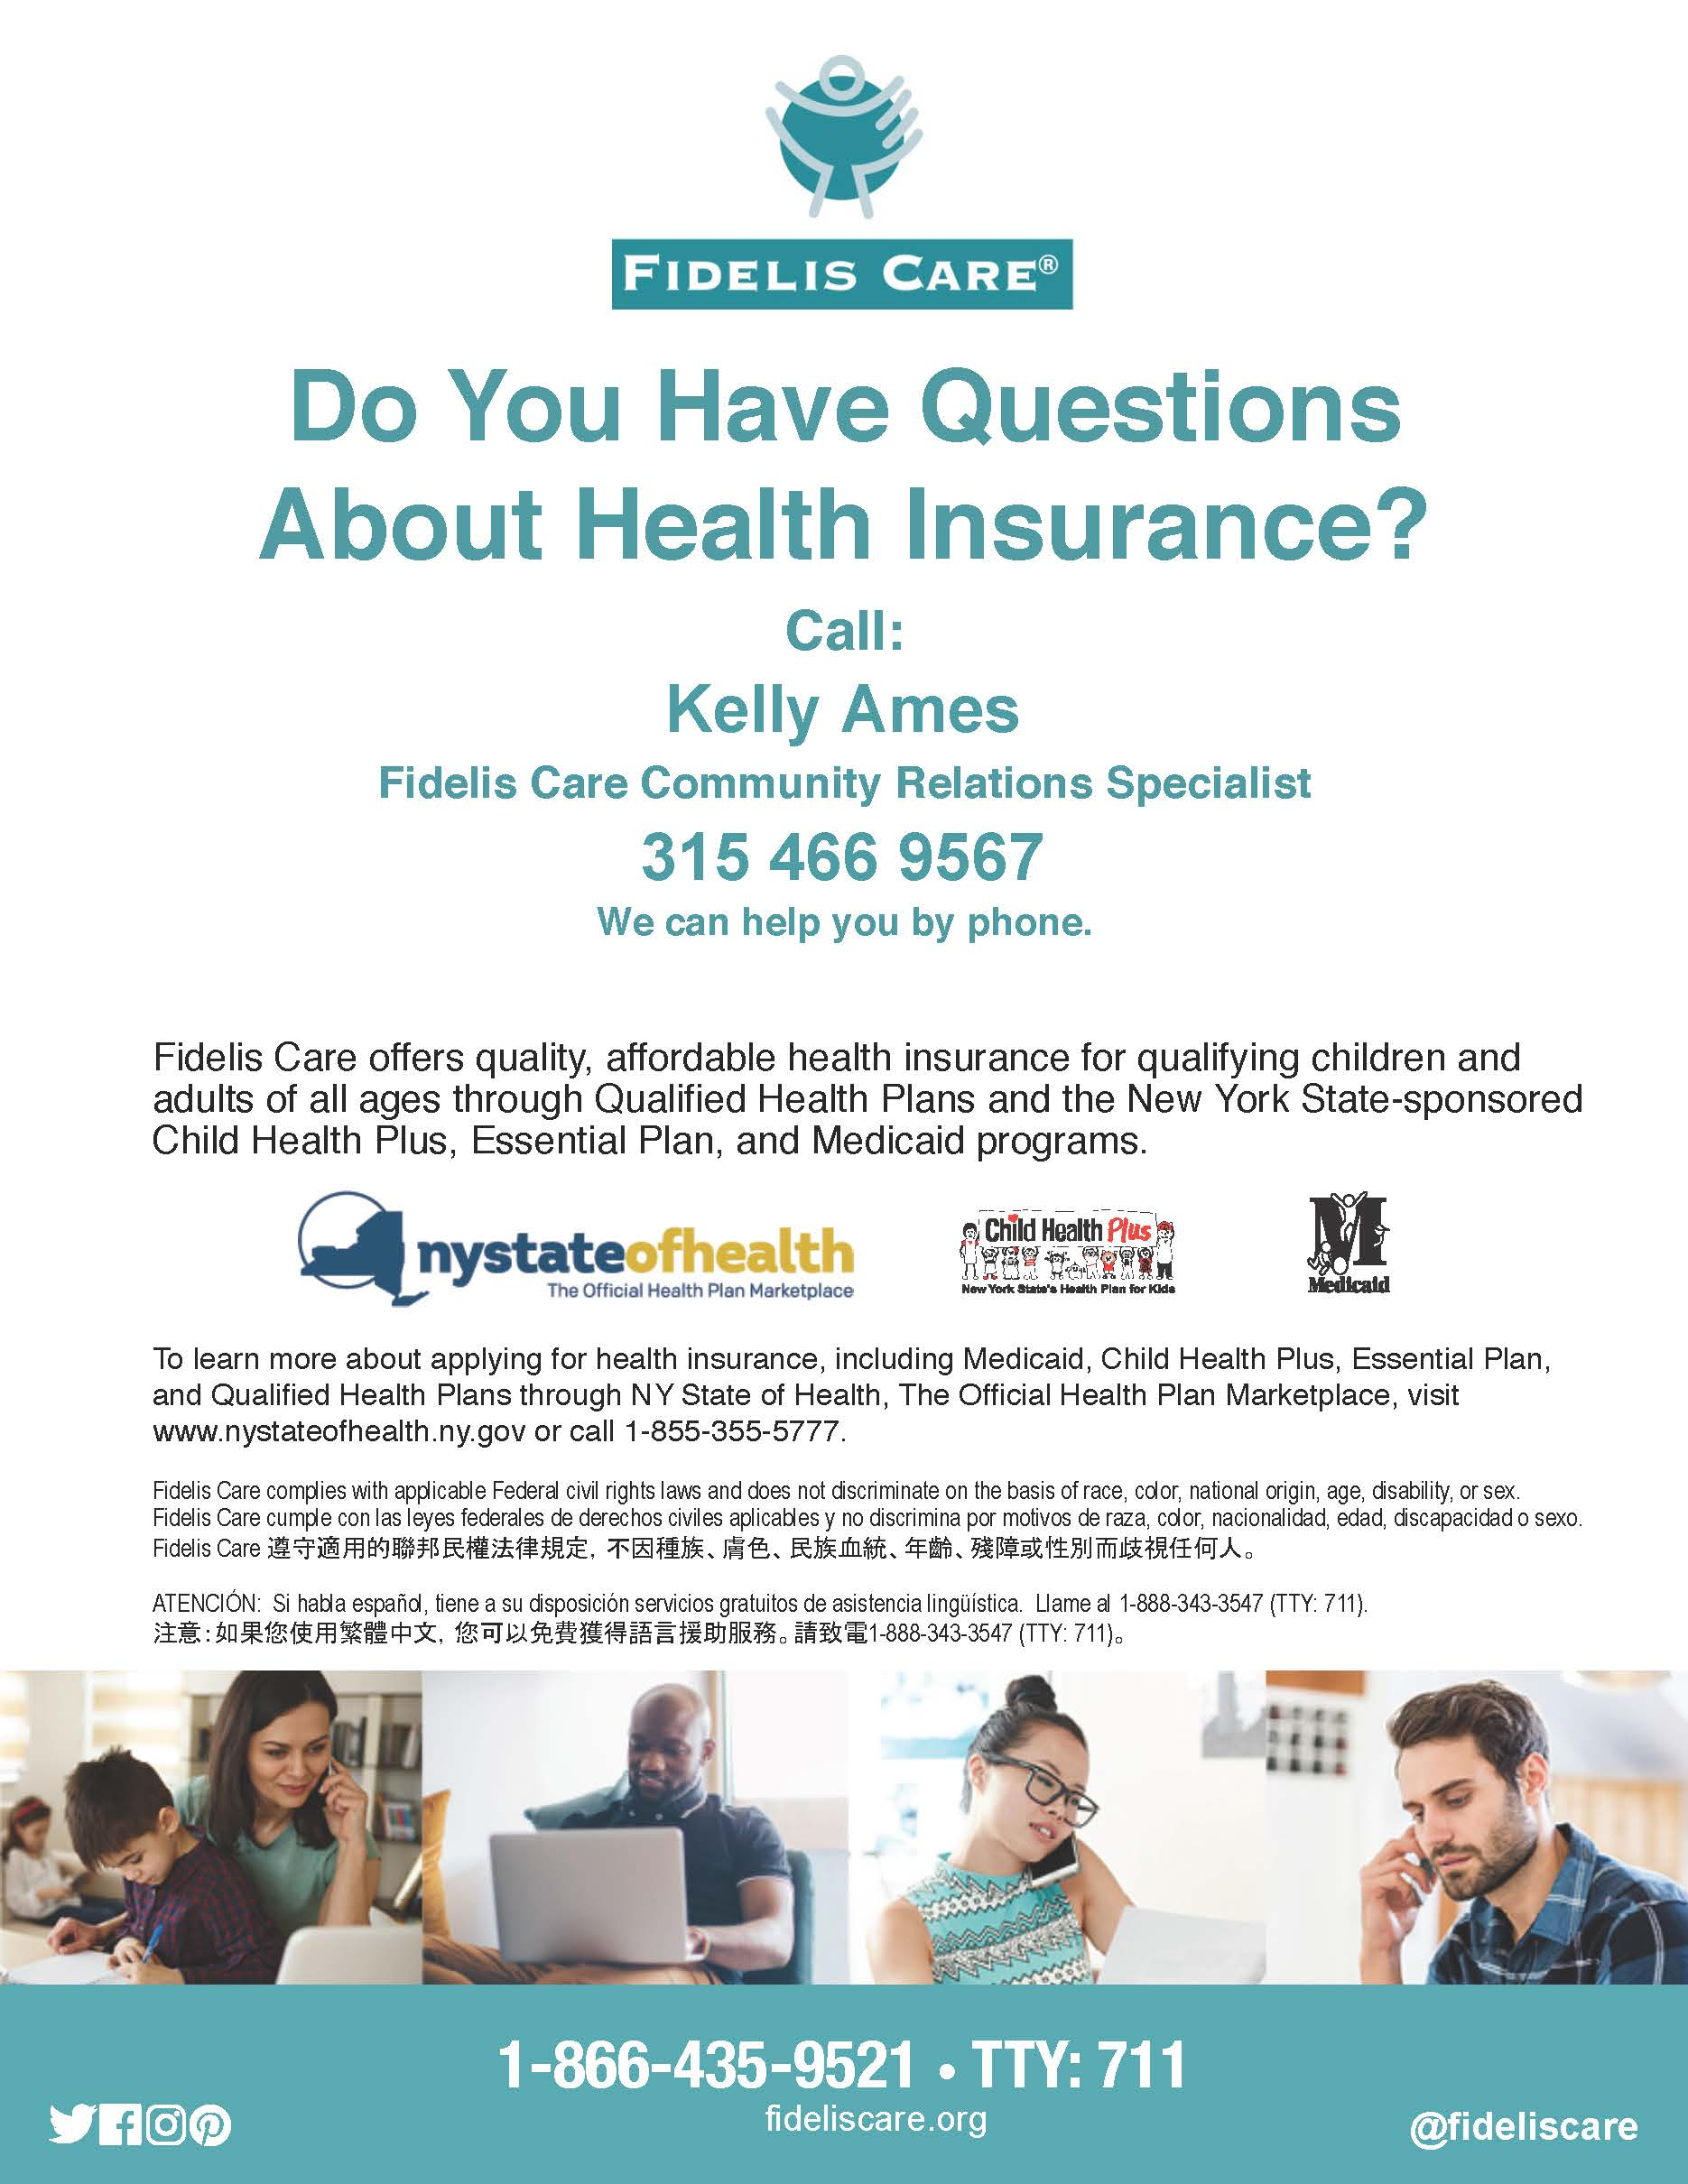 Do You Have Questions About Health Insurance?